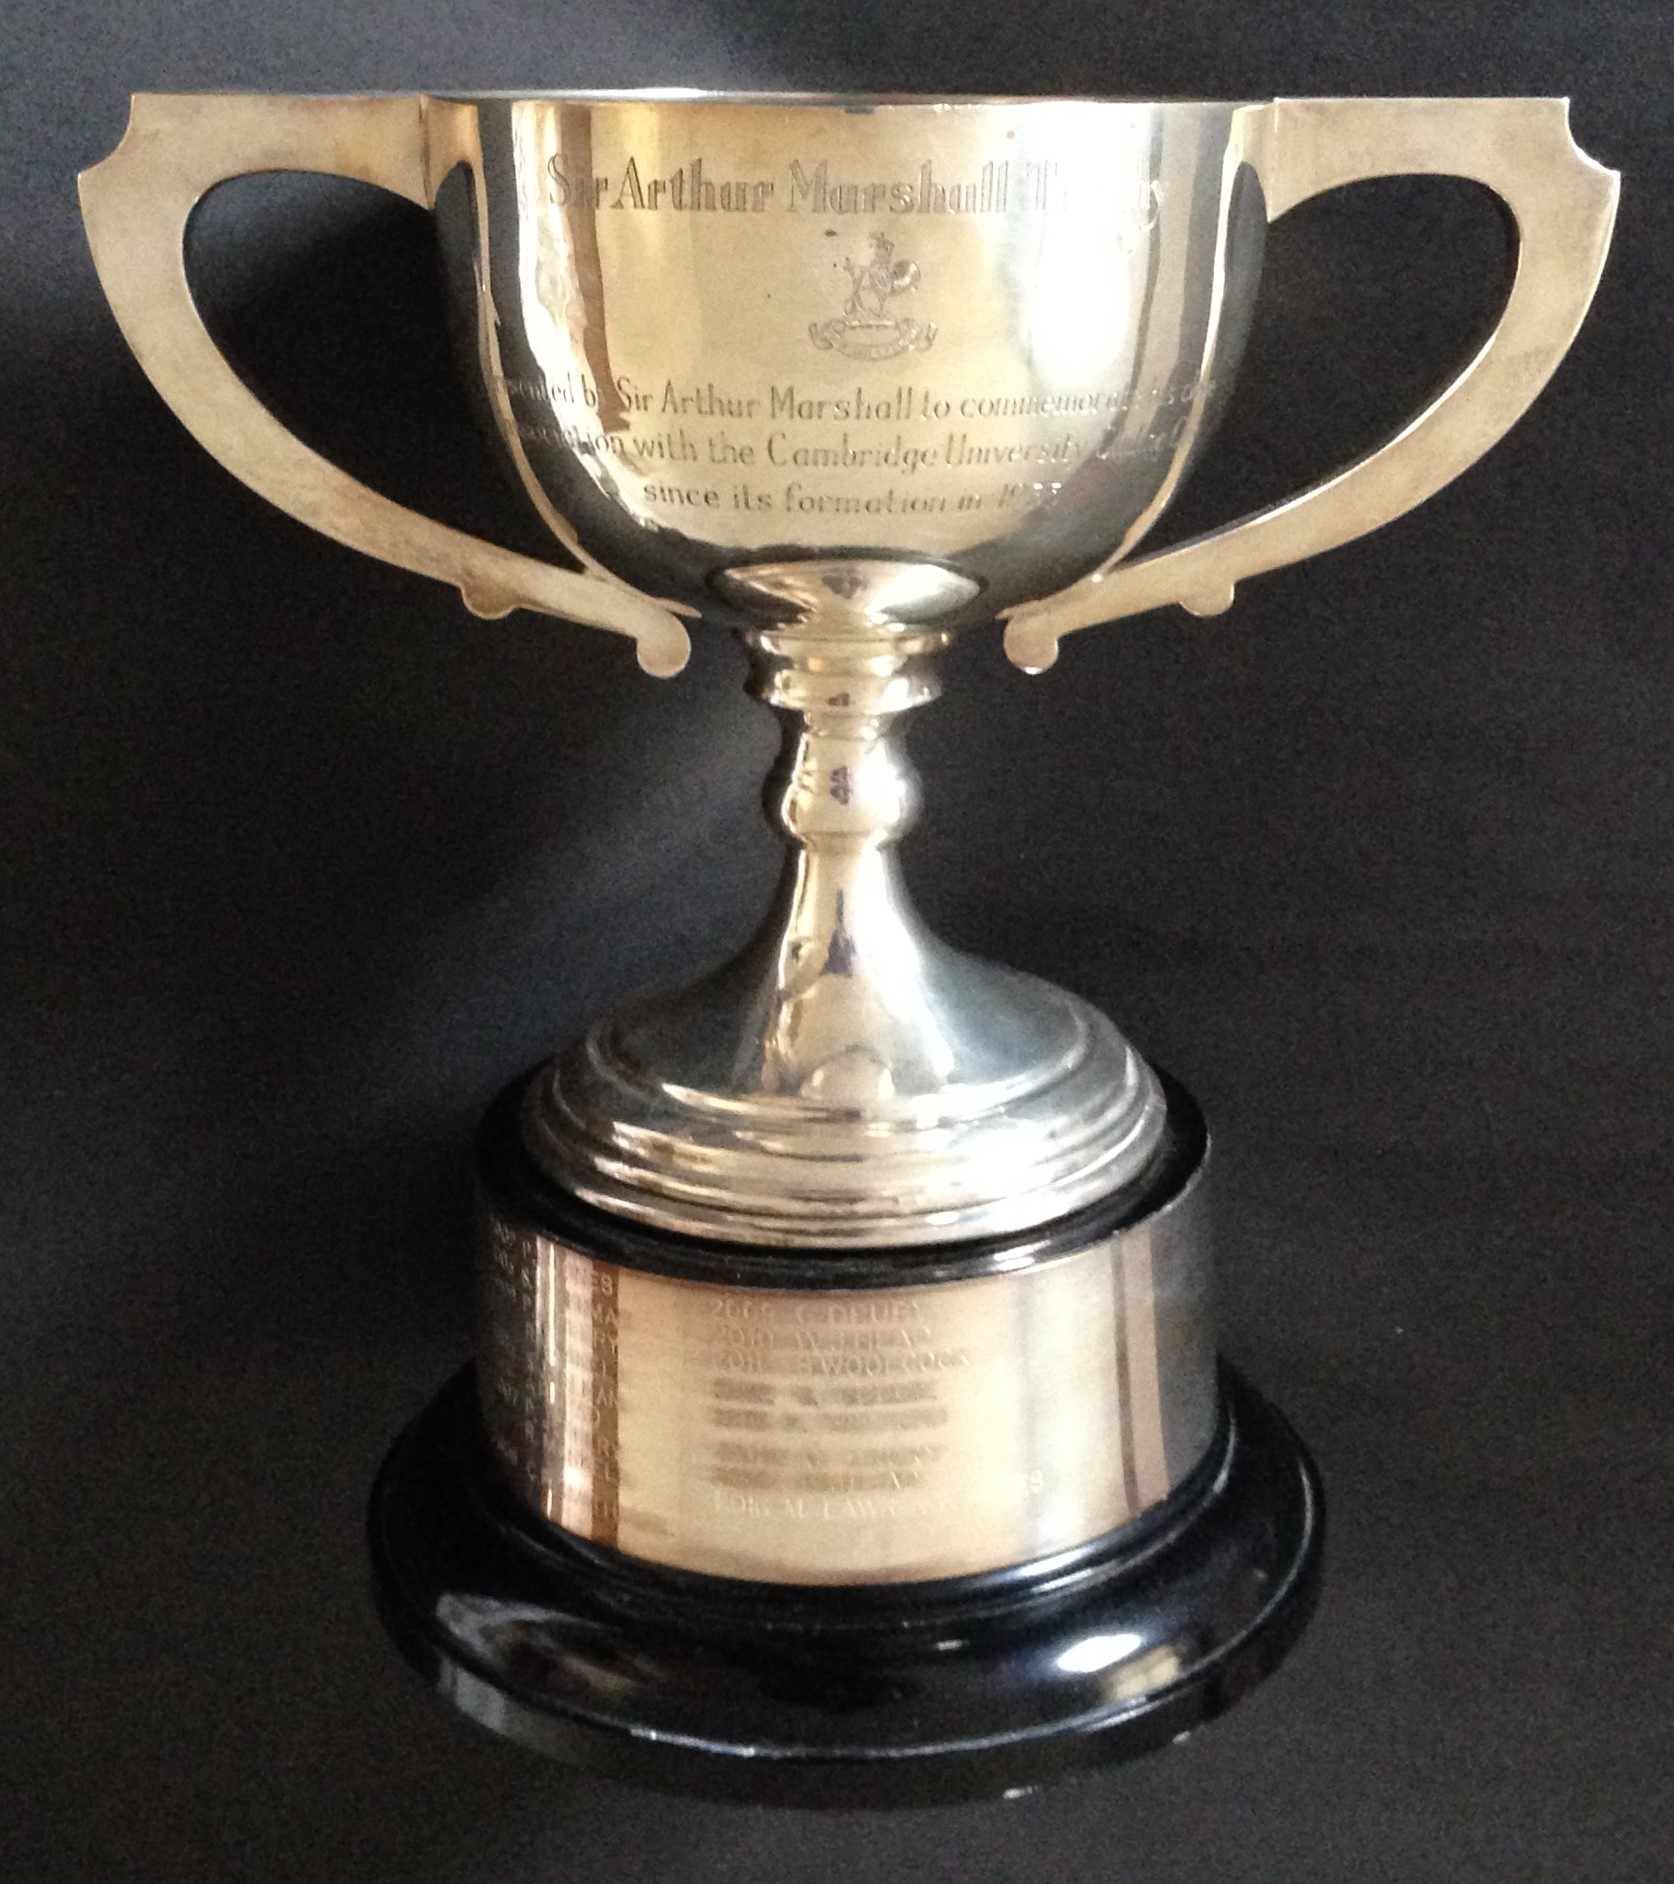 Sir Arthur Marshall Trophy